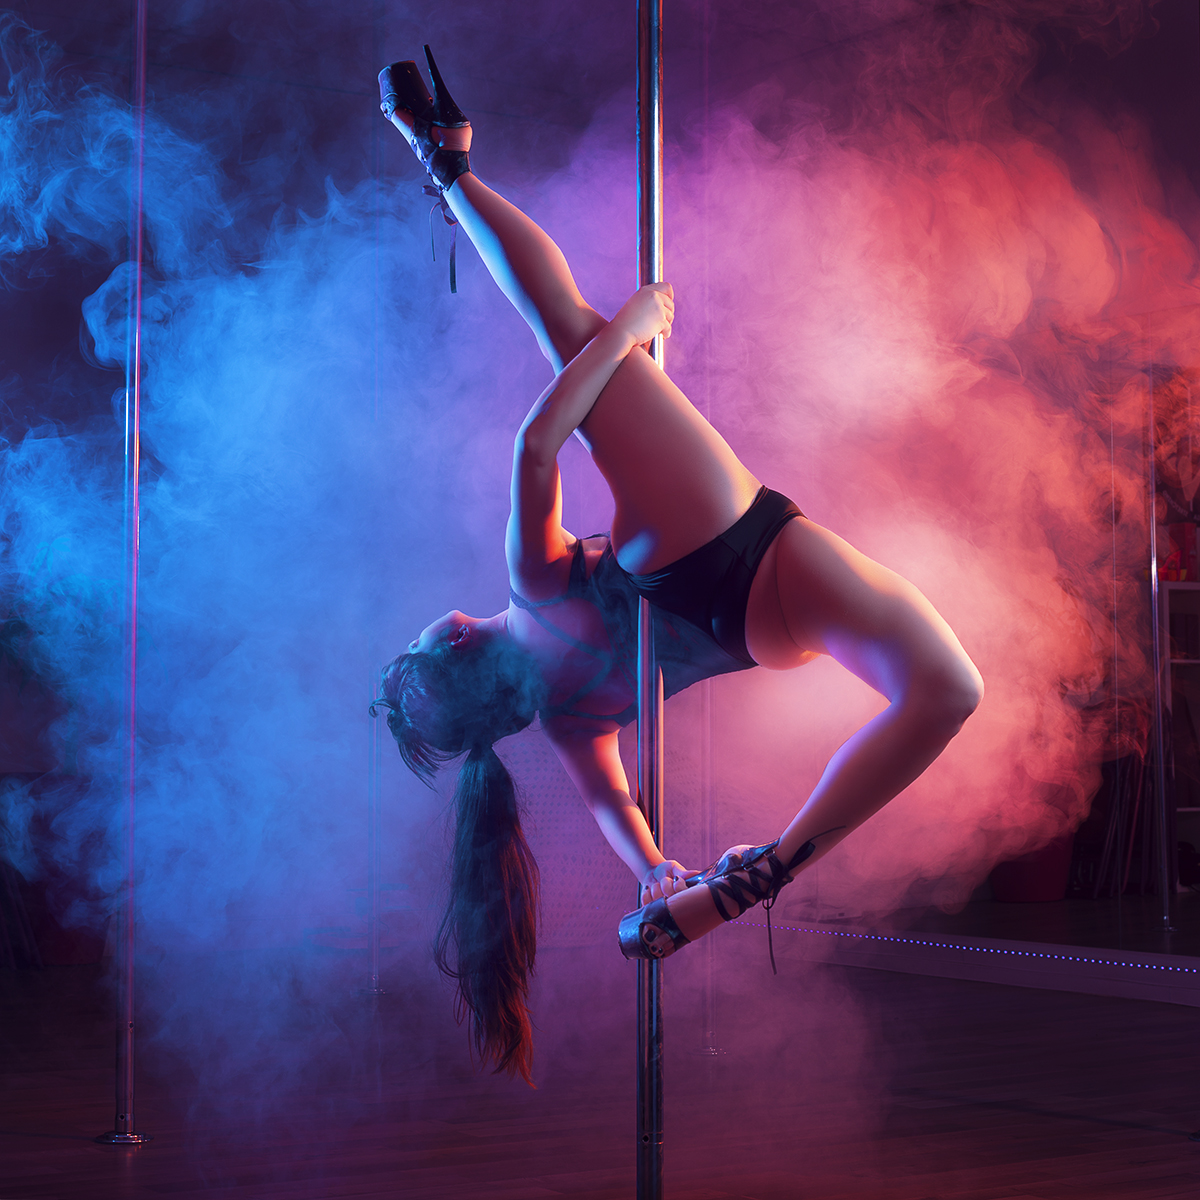 cours de pole dance cerceau et yoga toulouse. Black Bedroom Furniture Sets. Home Design Ideas